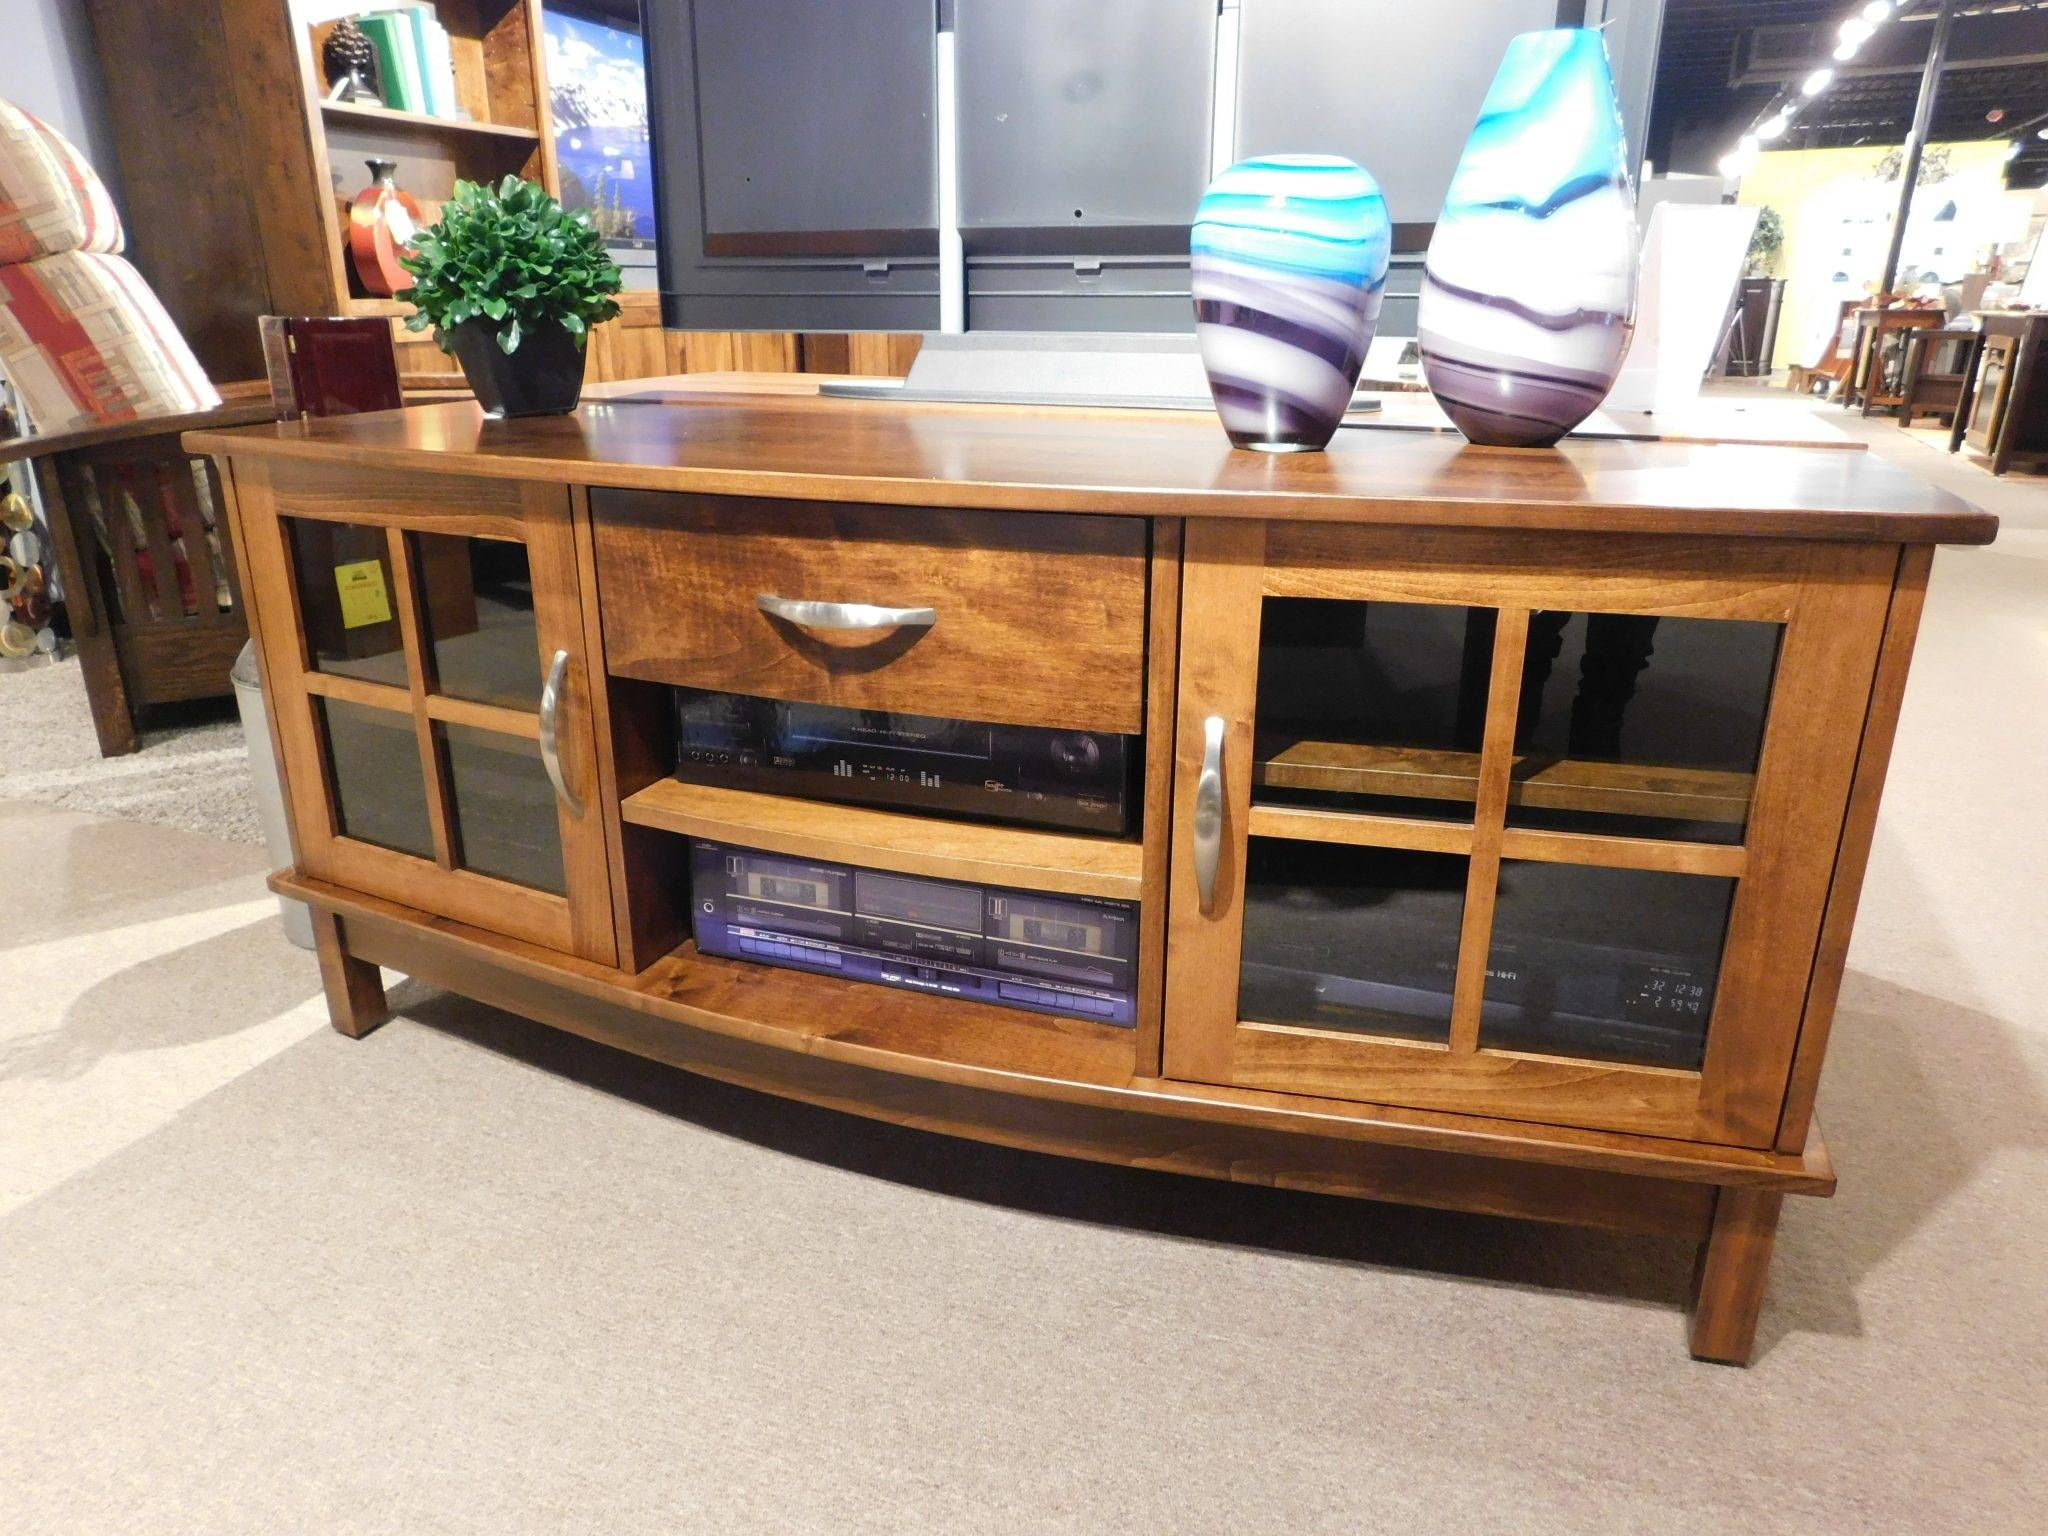 Tv Stands & Entertainment Centers | Don's Home Furniture Madison, Wi in Sideboards And Tv Stands (Image 29 of 30)